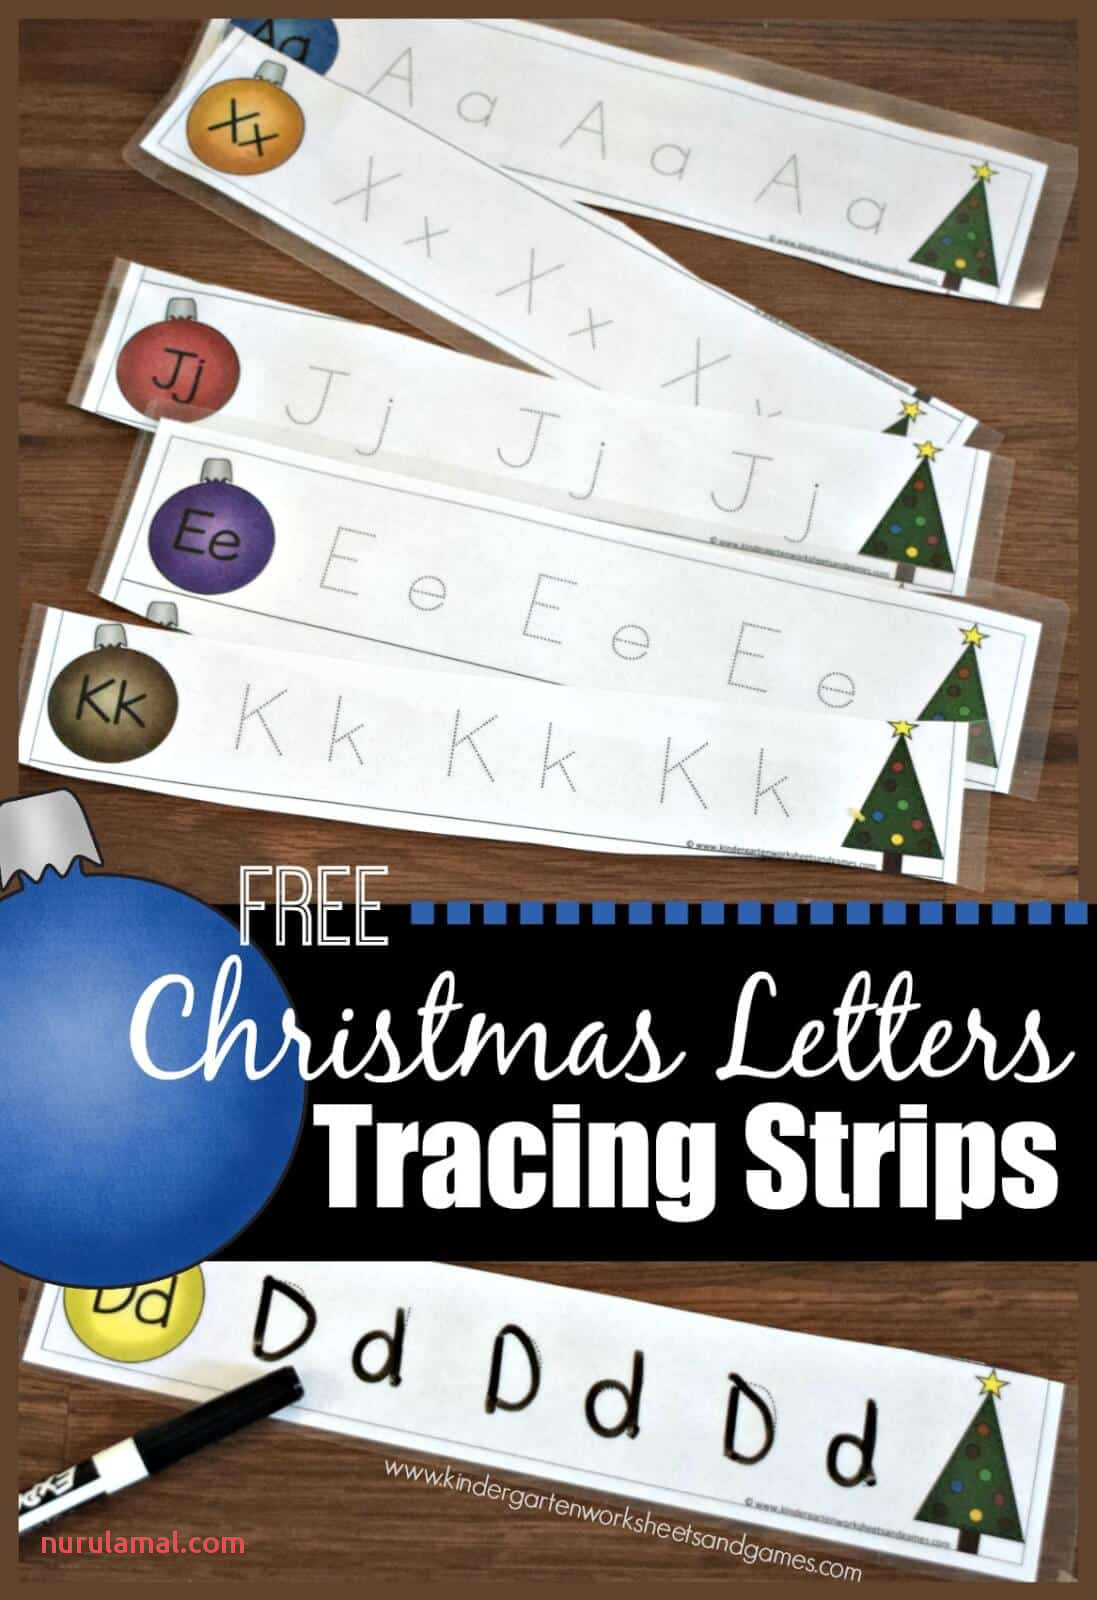 Free Handwriting Worksheets For Kids Trace